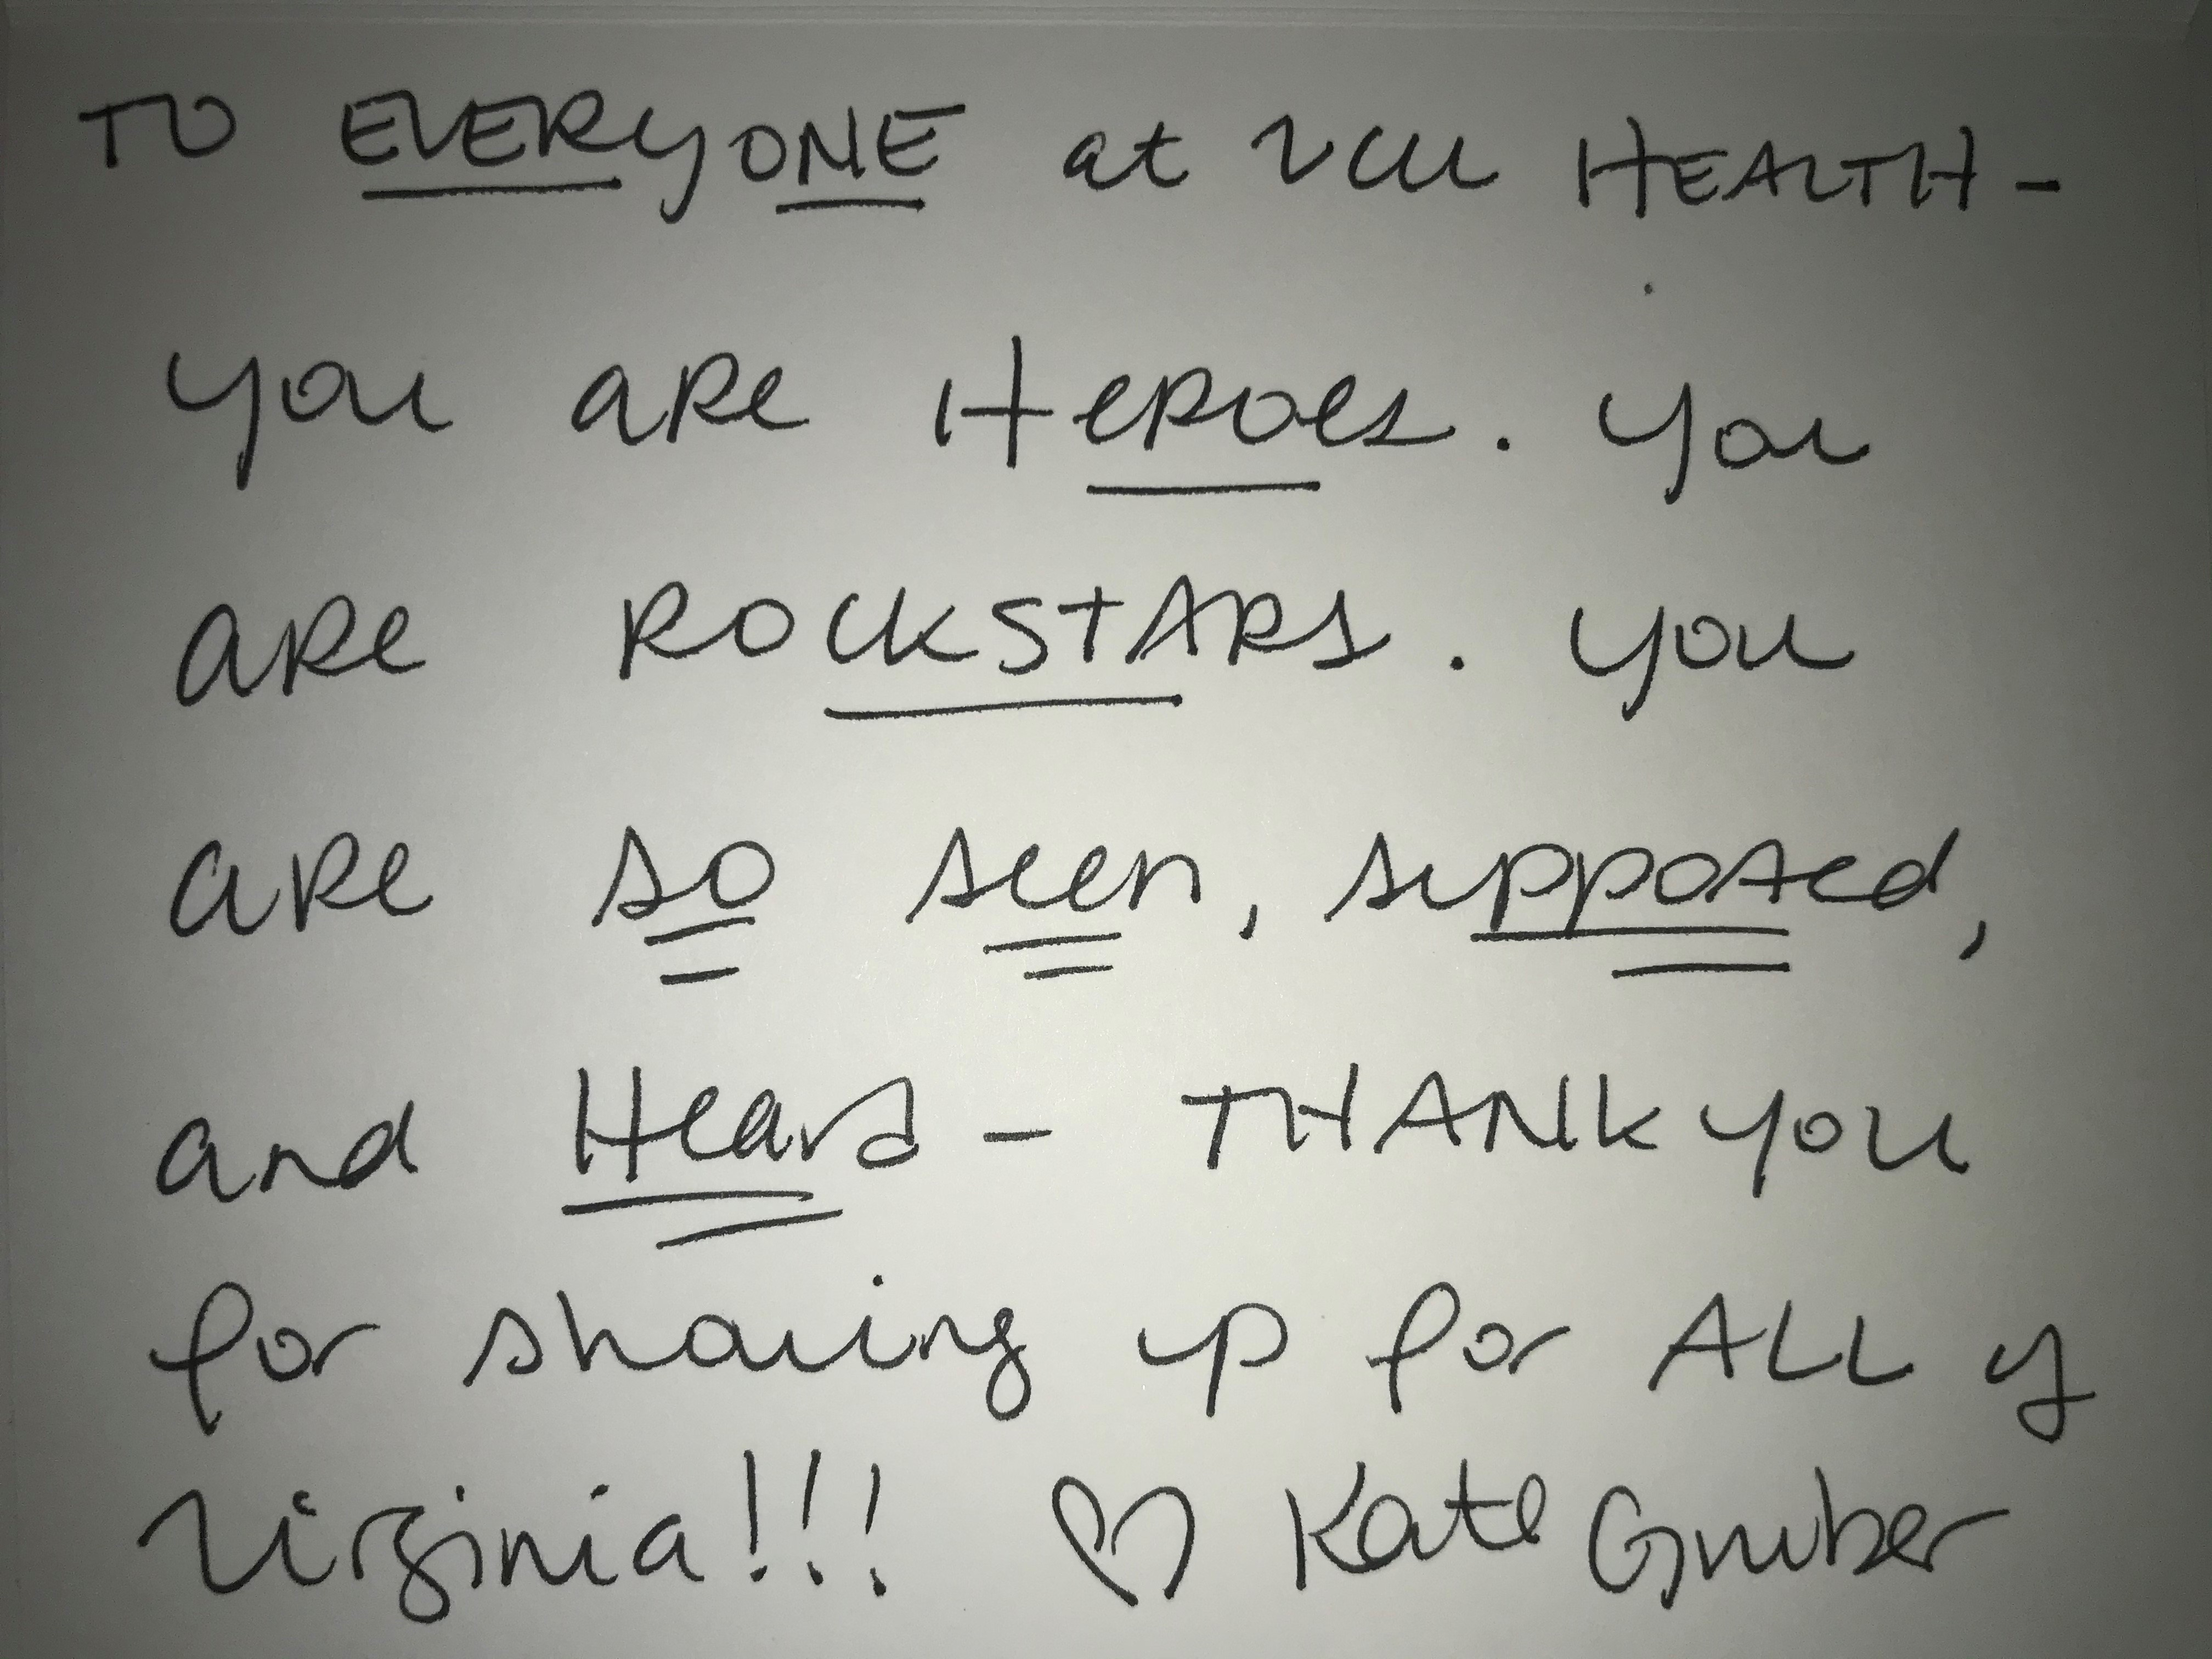 You are heroes. You are rockstars. You are seen, supported and heard. Thank you!